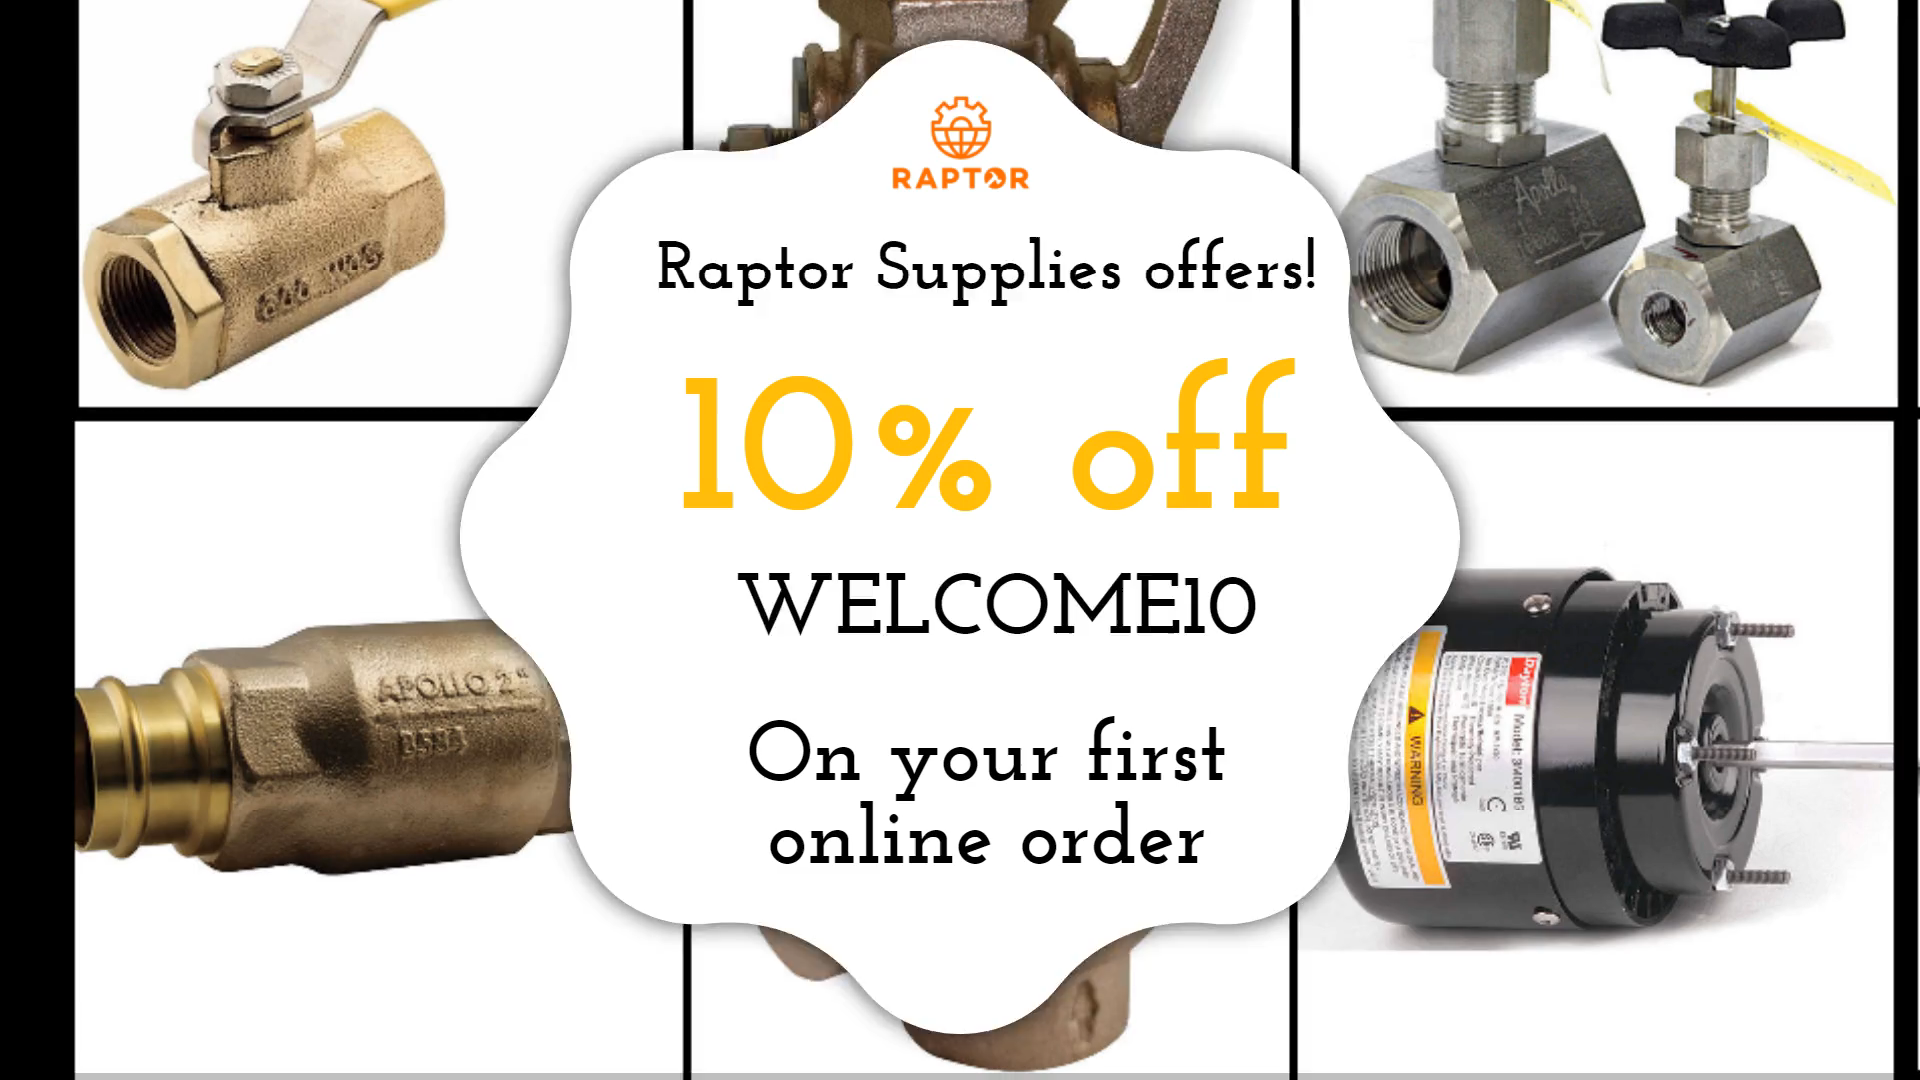 We are proud to be your single-source supplier of all of your MRO product needs! Now get 10% OFF on your first online order. Use code WELCOME10 at checkout. #raptorsupplies #UnitedKingdom #tools #industrial #MROsupplier #Discount #IndustrialParts